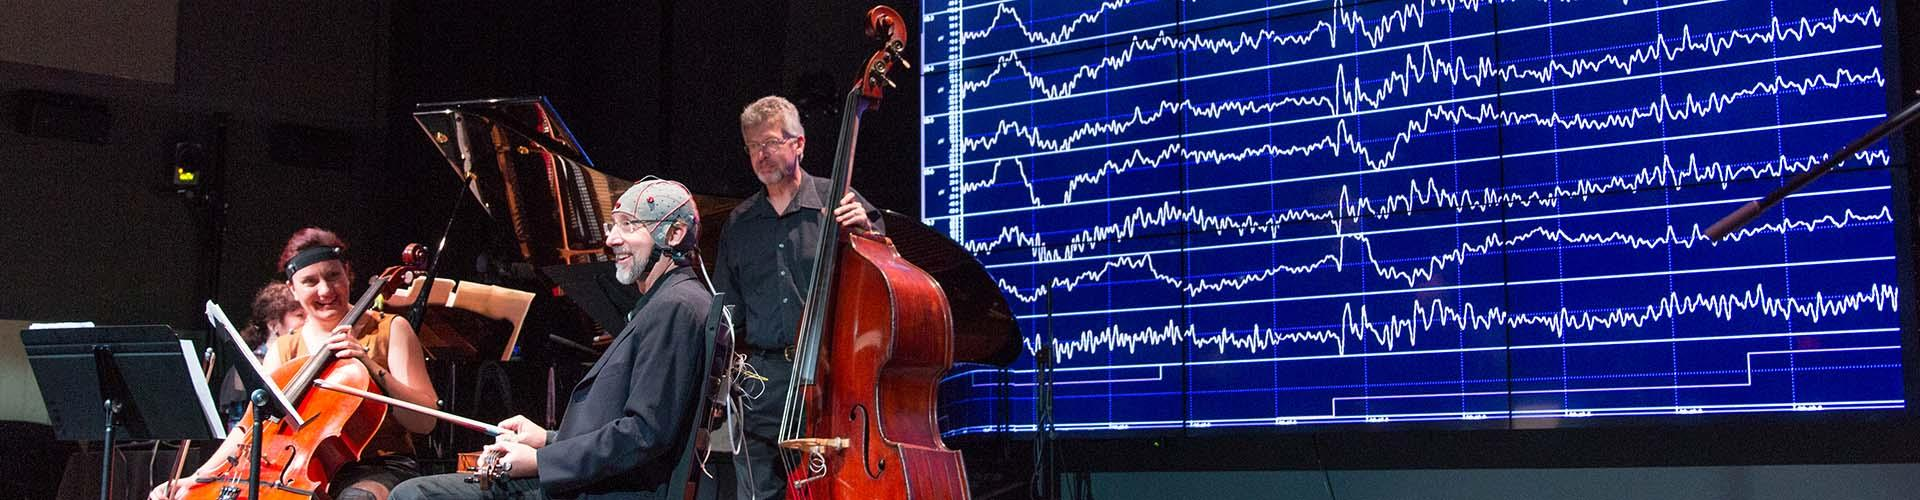 image of LIVELab research where musicians are performing with EEG caps with brain scans in the background